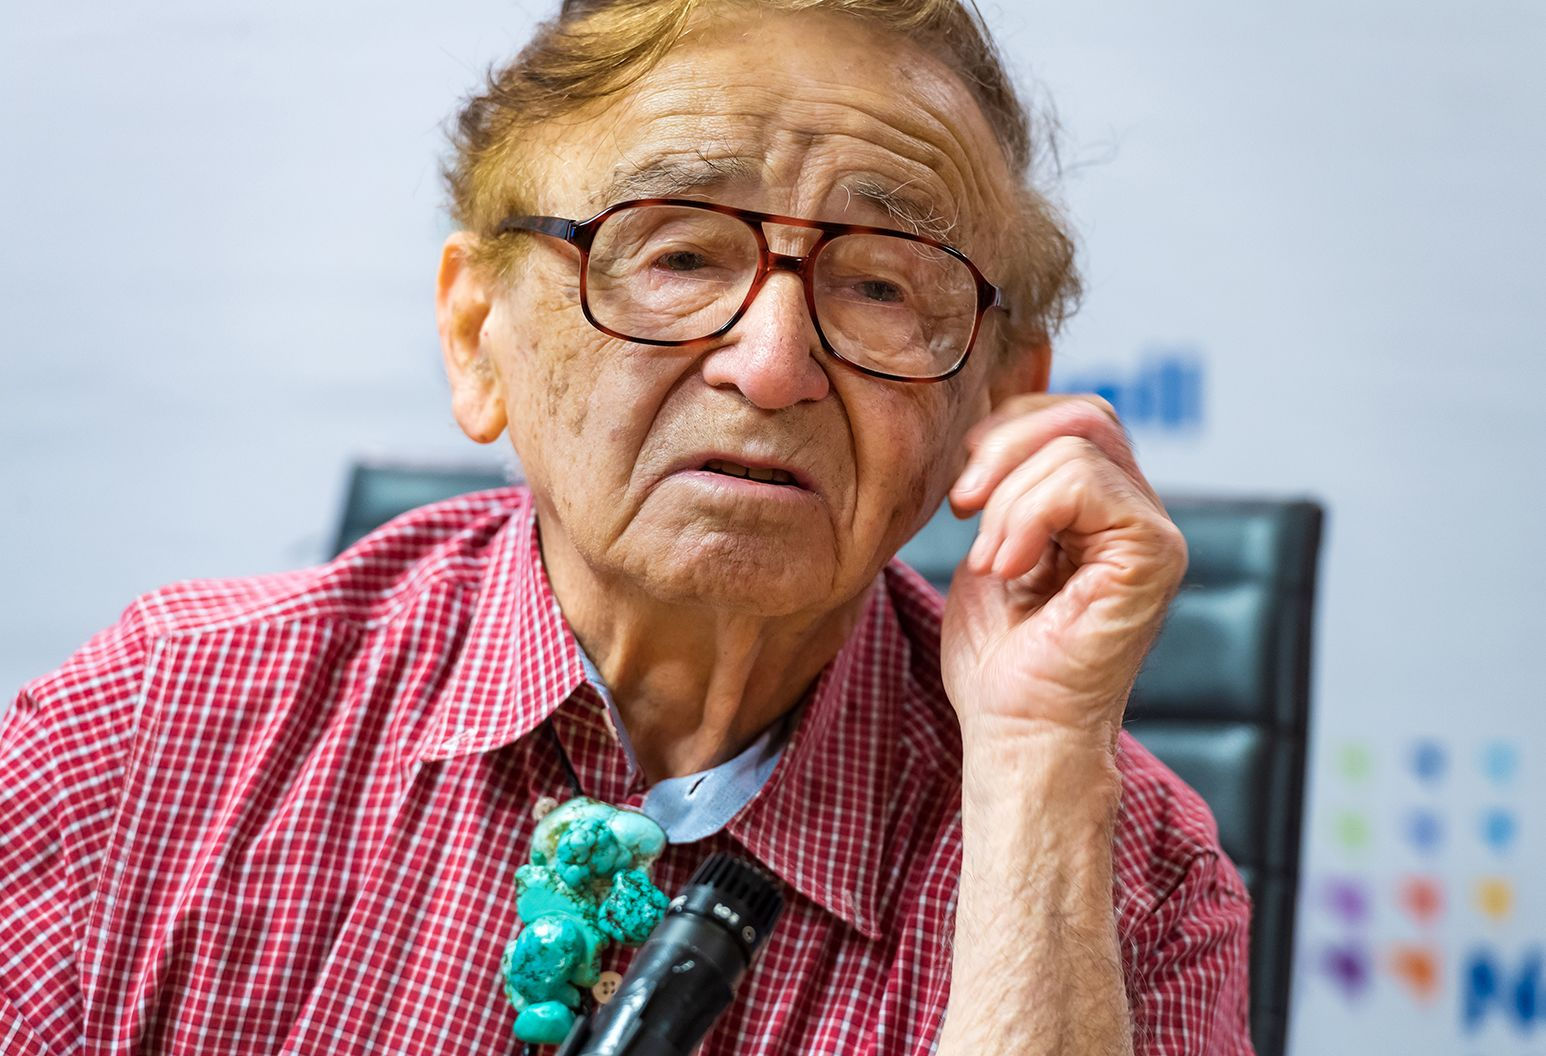 An elderly man wearing glasses and a red checkered shirt sits at a press conference.